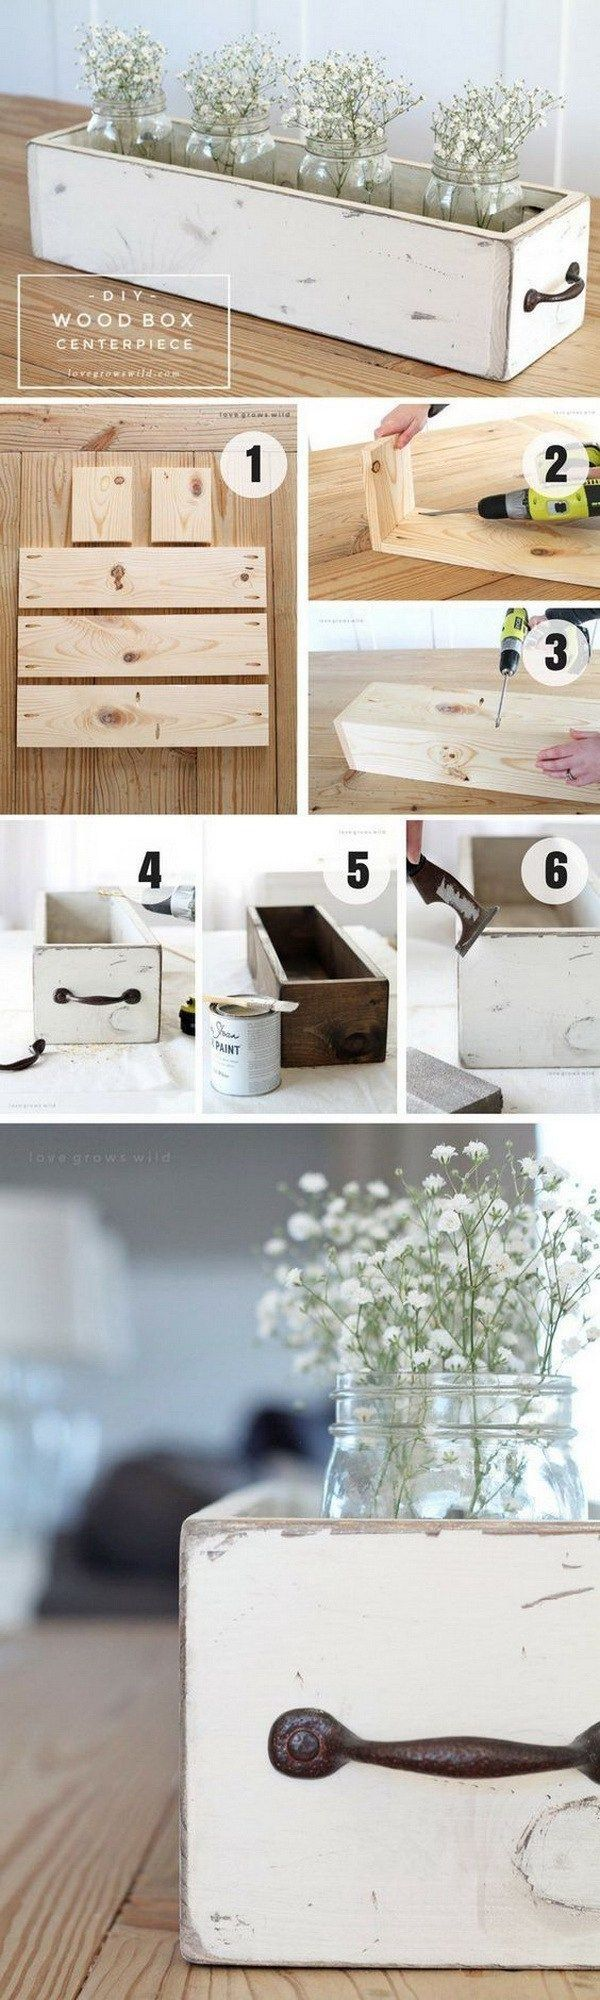 Diy Hanging Shelves 17 Easy Diy Home Decor Craft